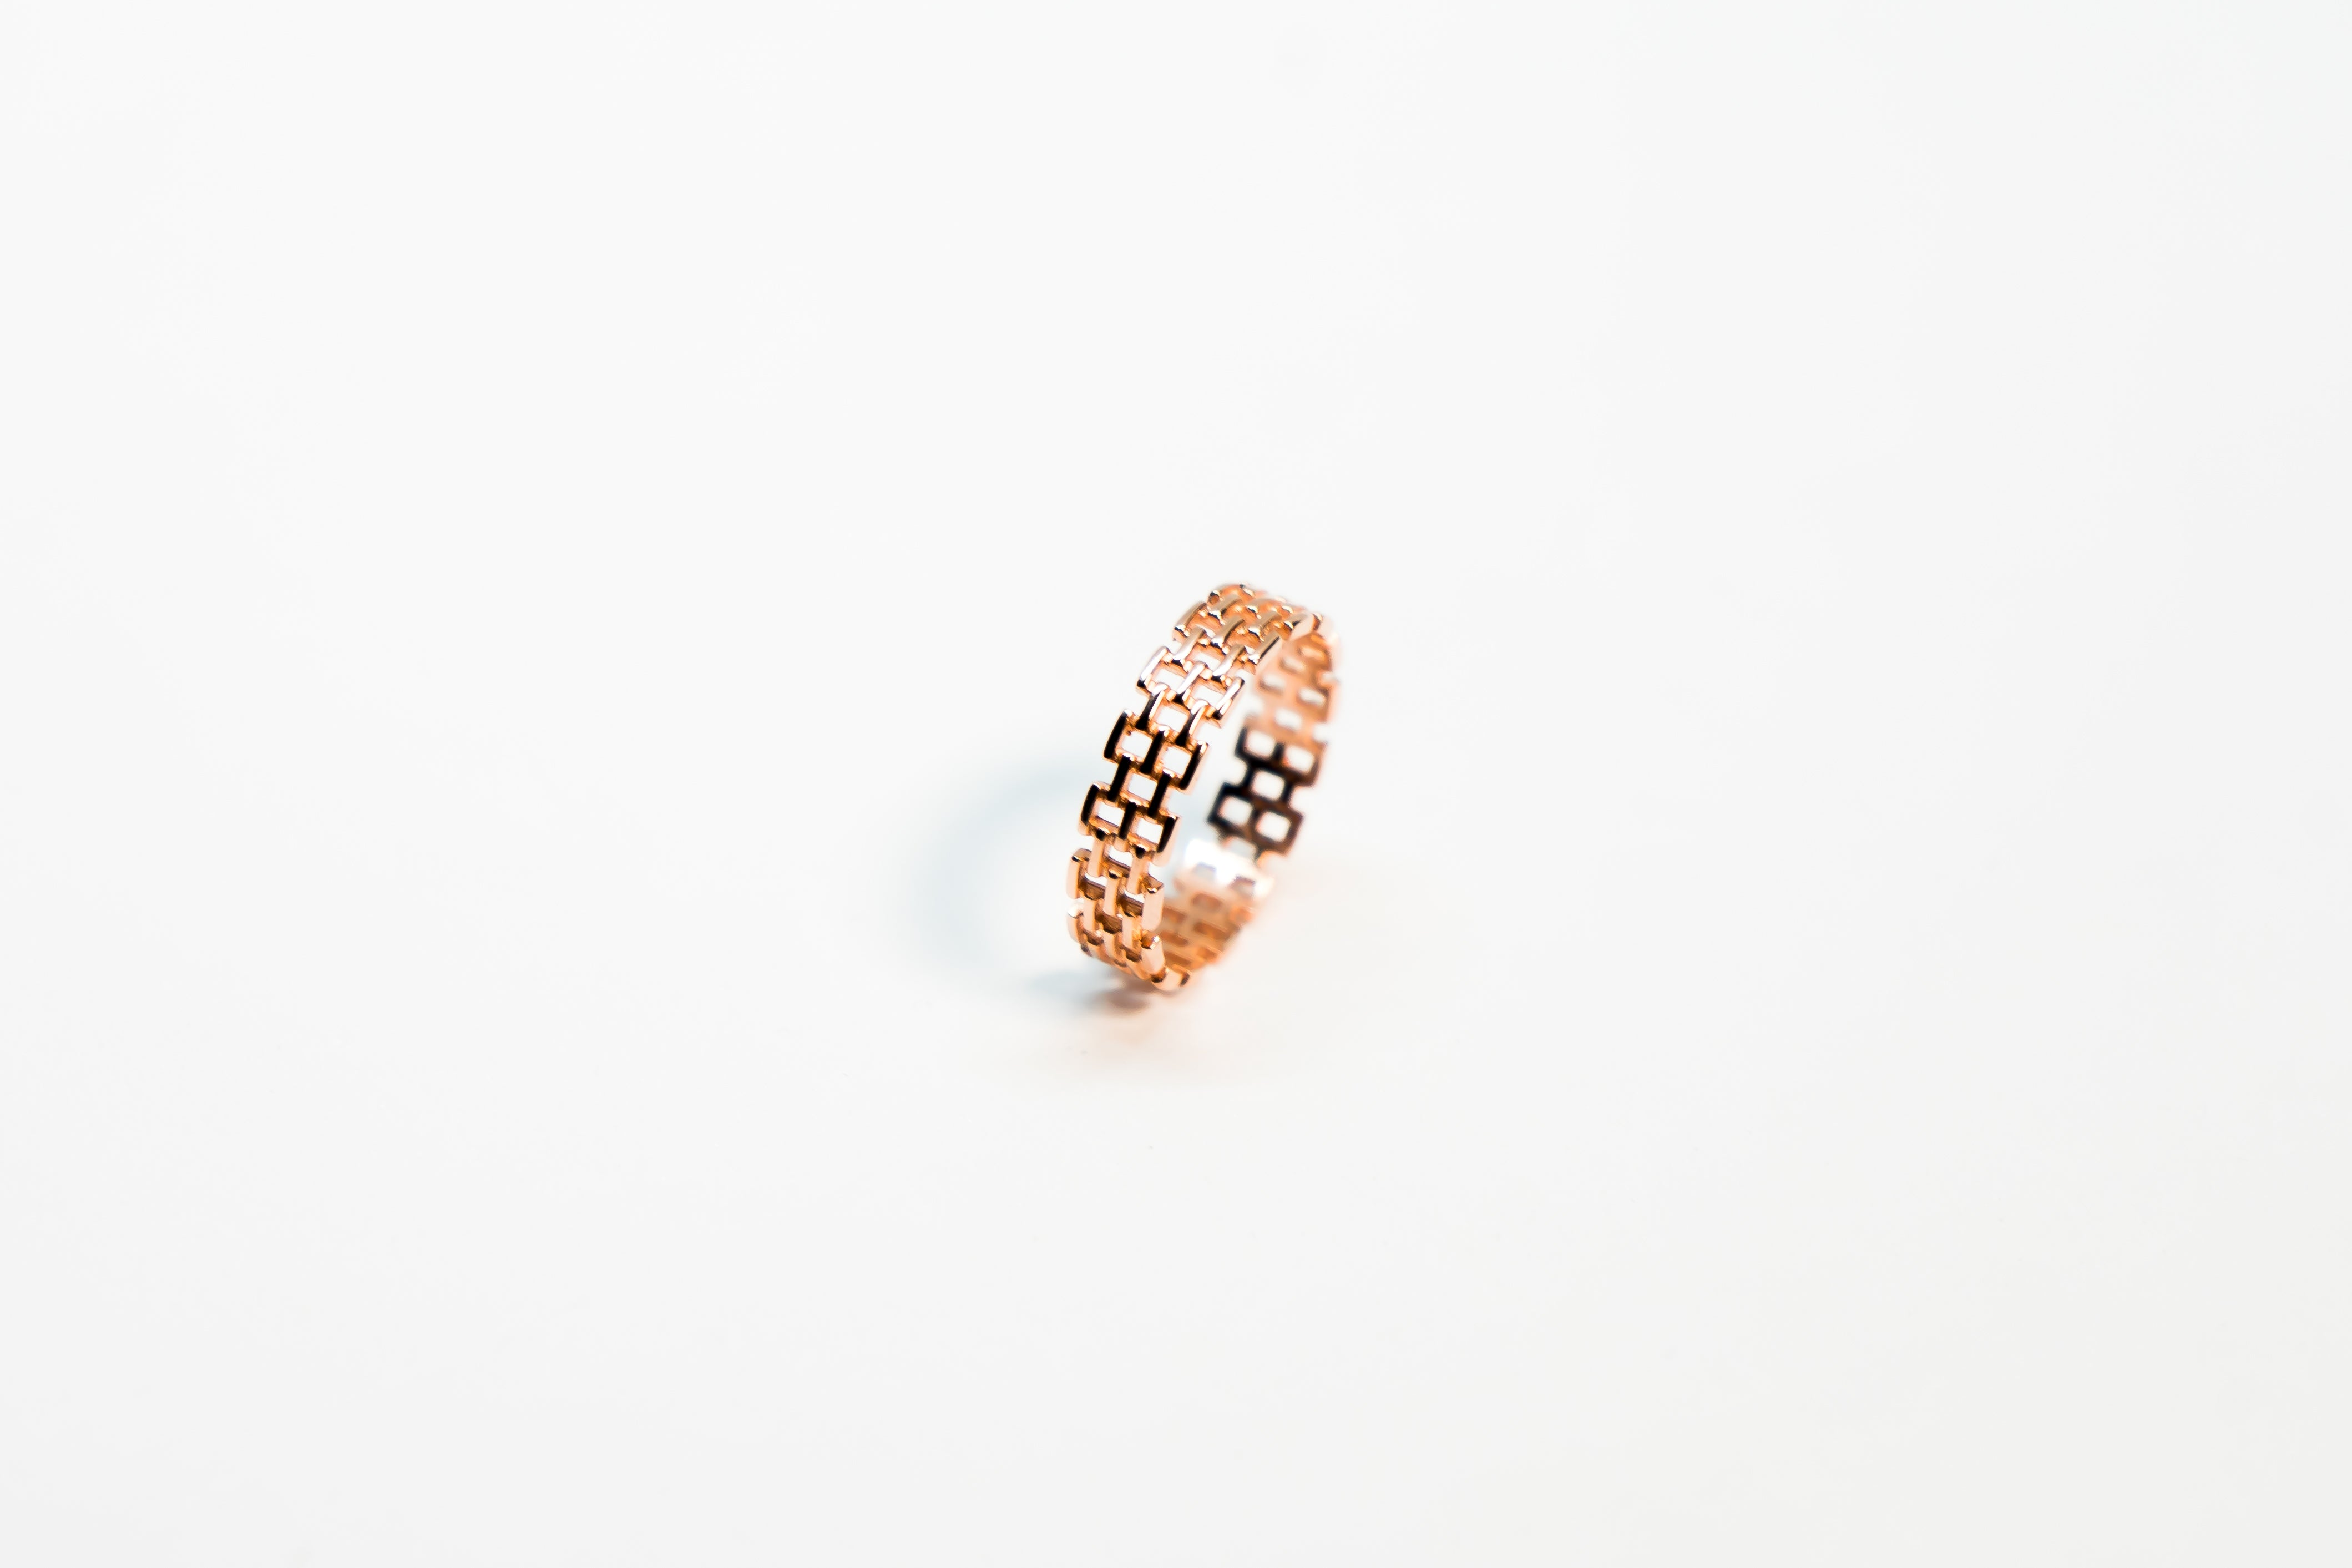 Rose Gold Hive Ring The Glared